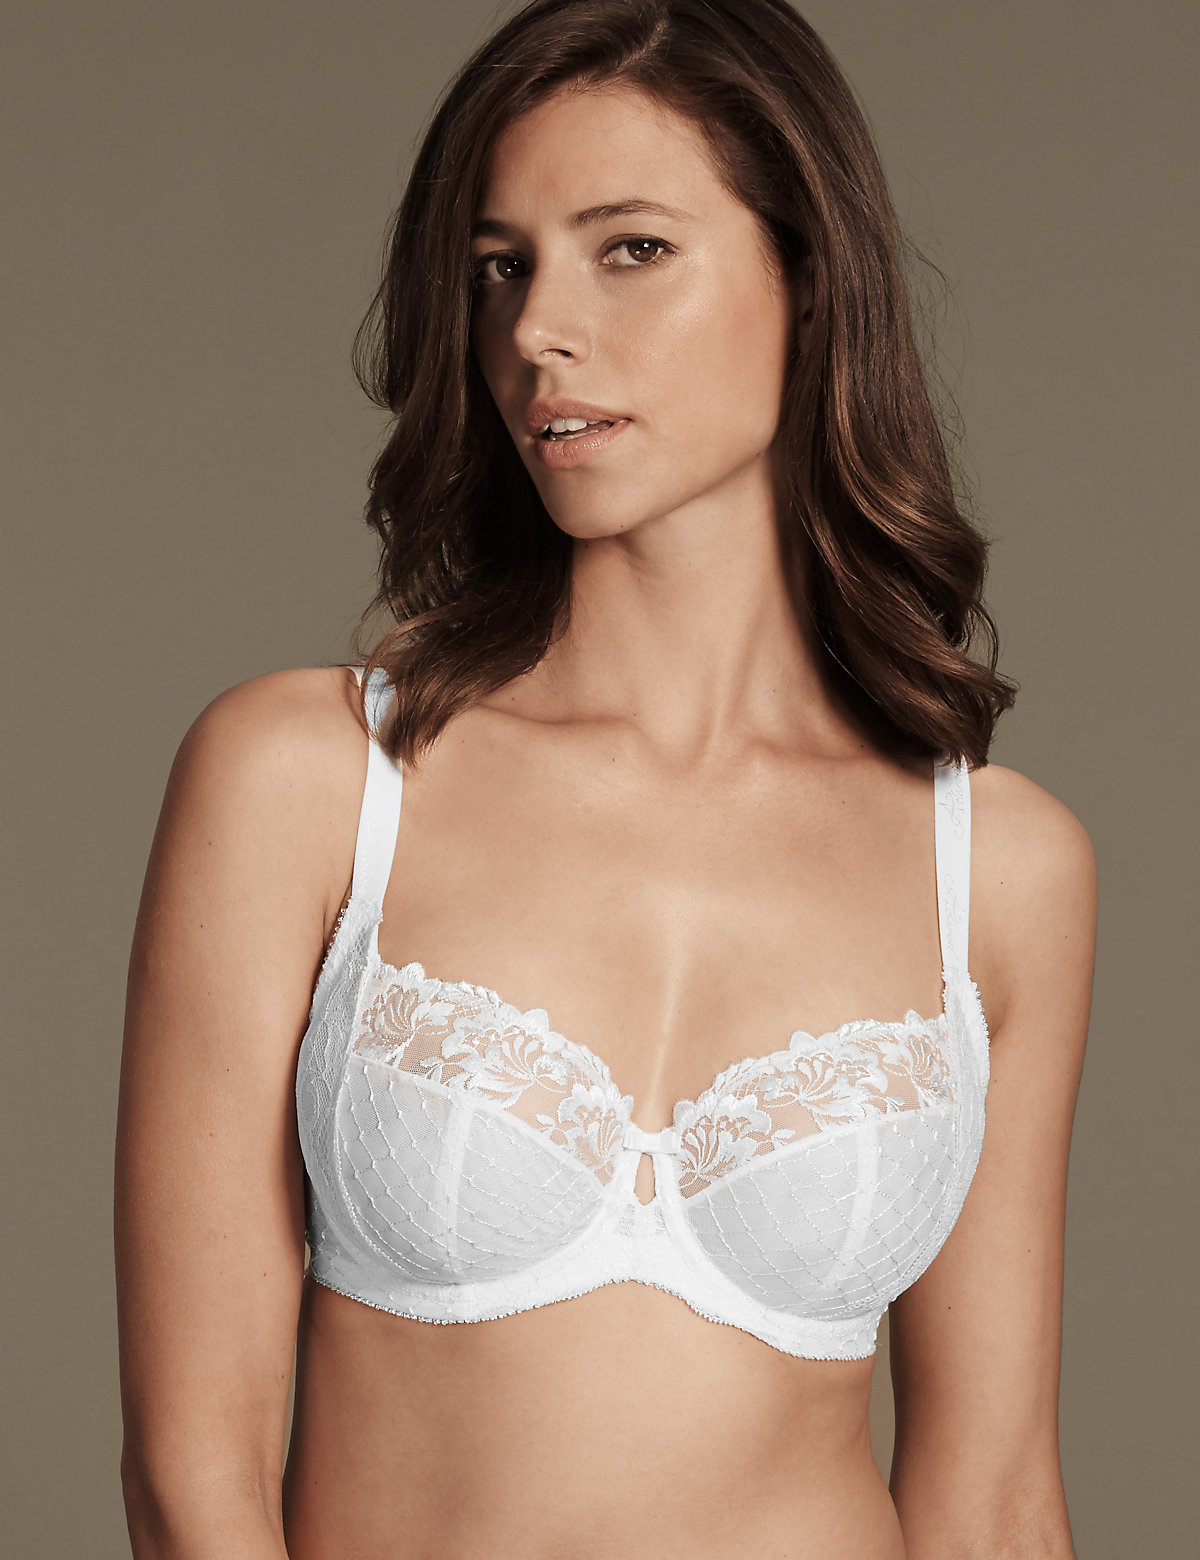 Adored Ophelia Embroidered Non Padded Balcony Bra DD-GG with Cool Comfort Technology